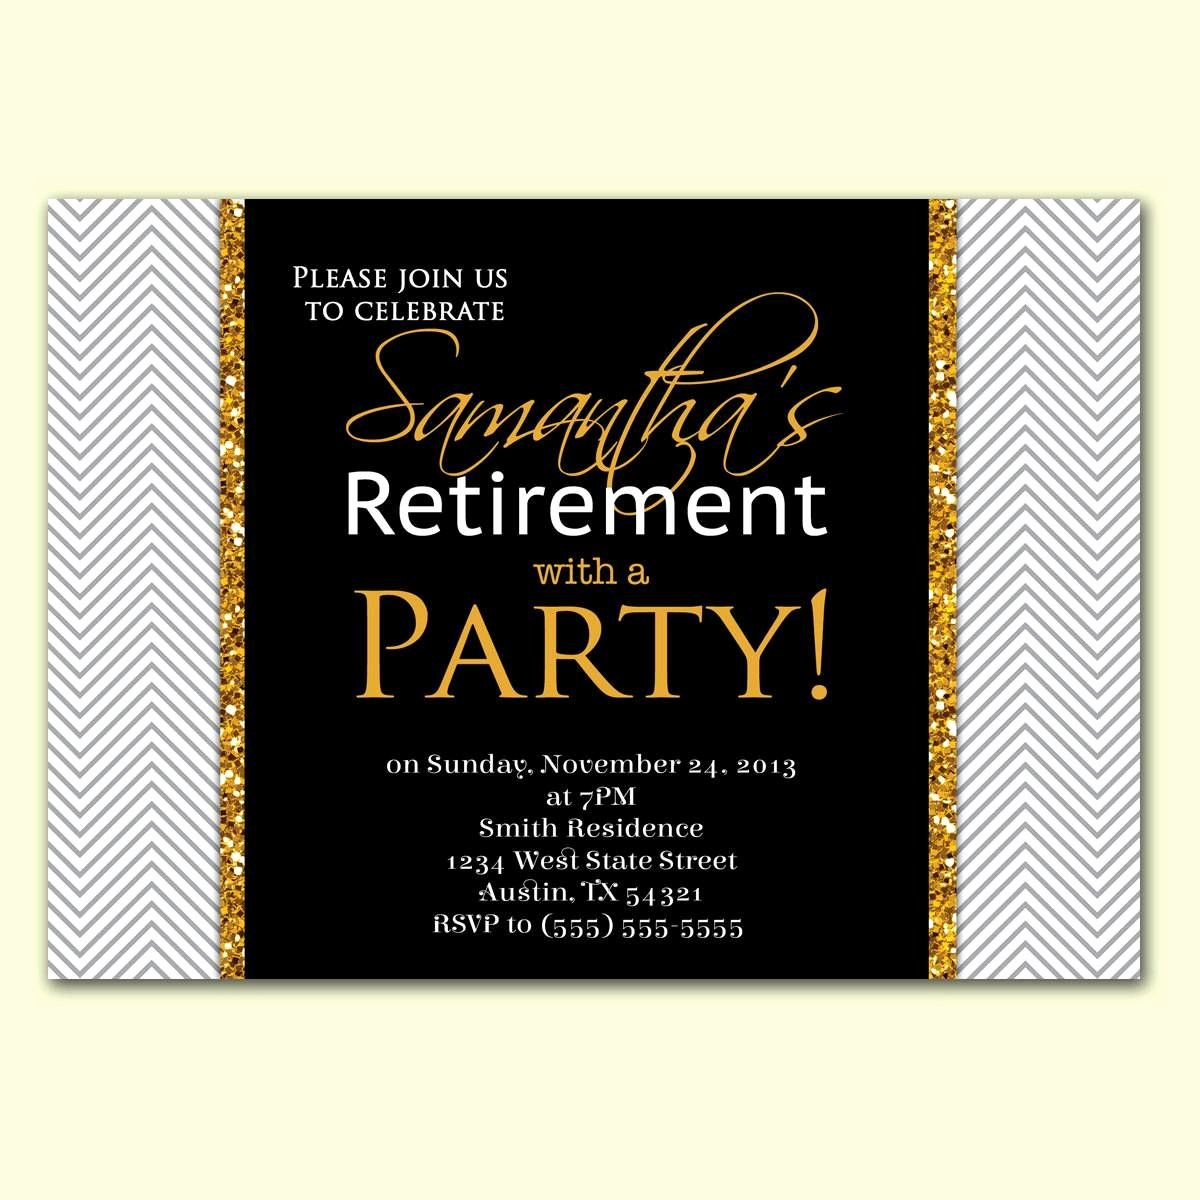 Retirement Party Invitations Templates Fresh Retirement Party Invitation Wording In Hindi